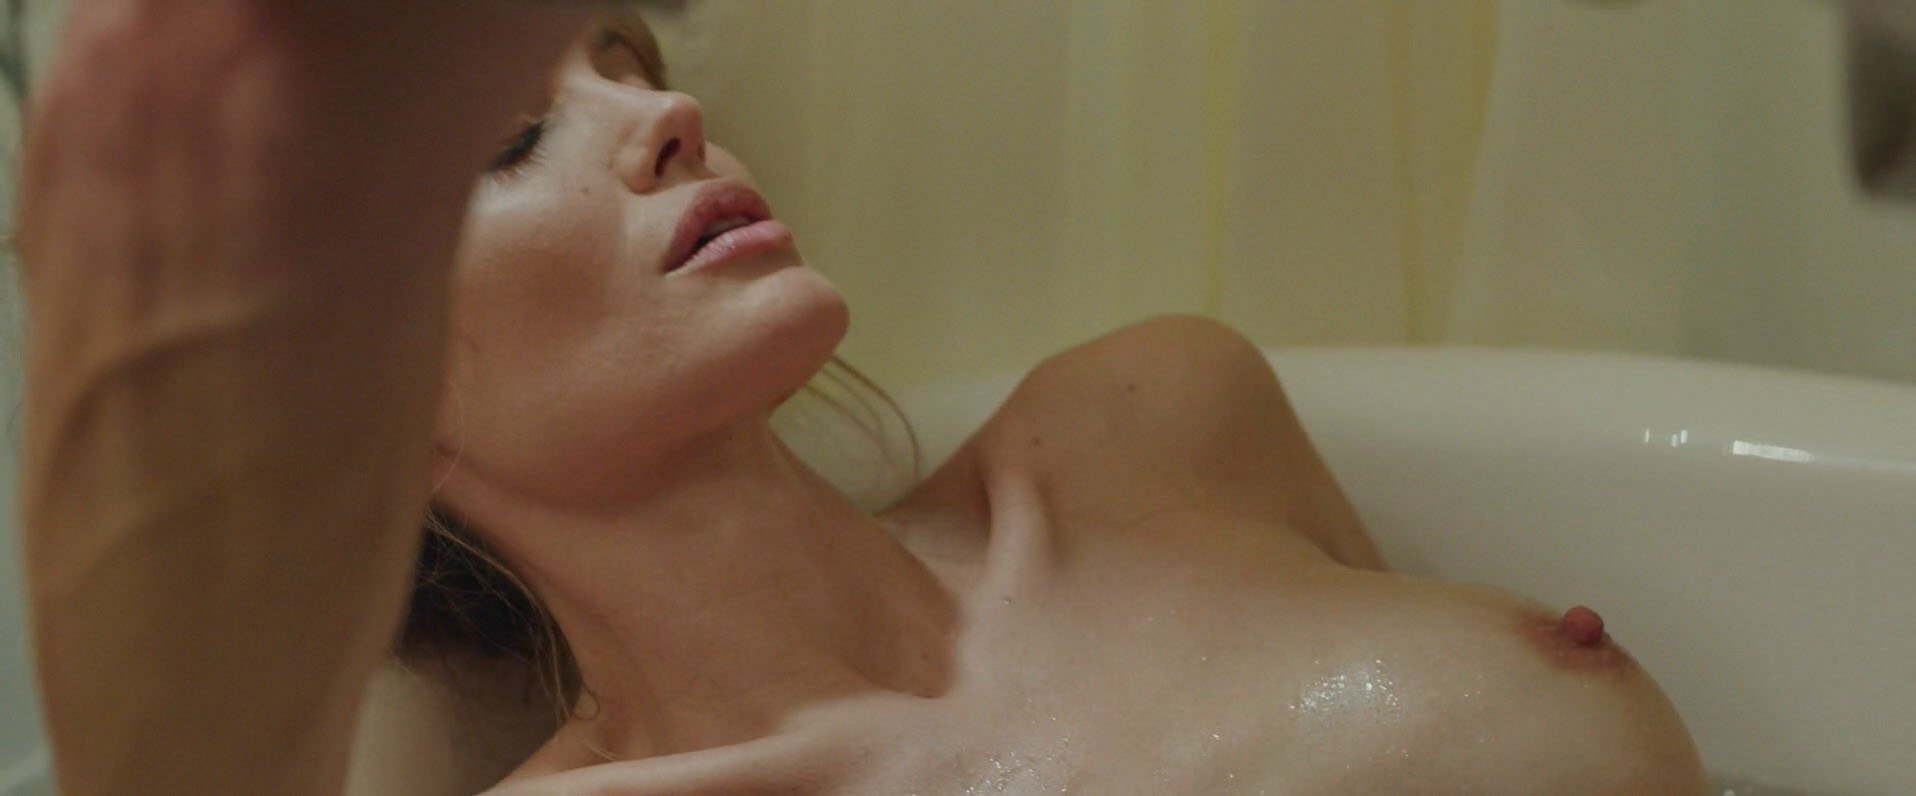 nude movies of angelina jolie